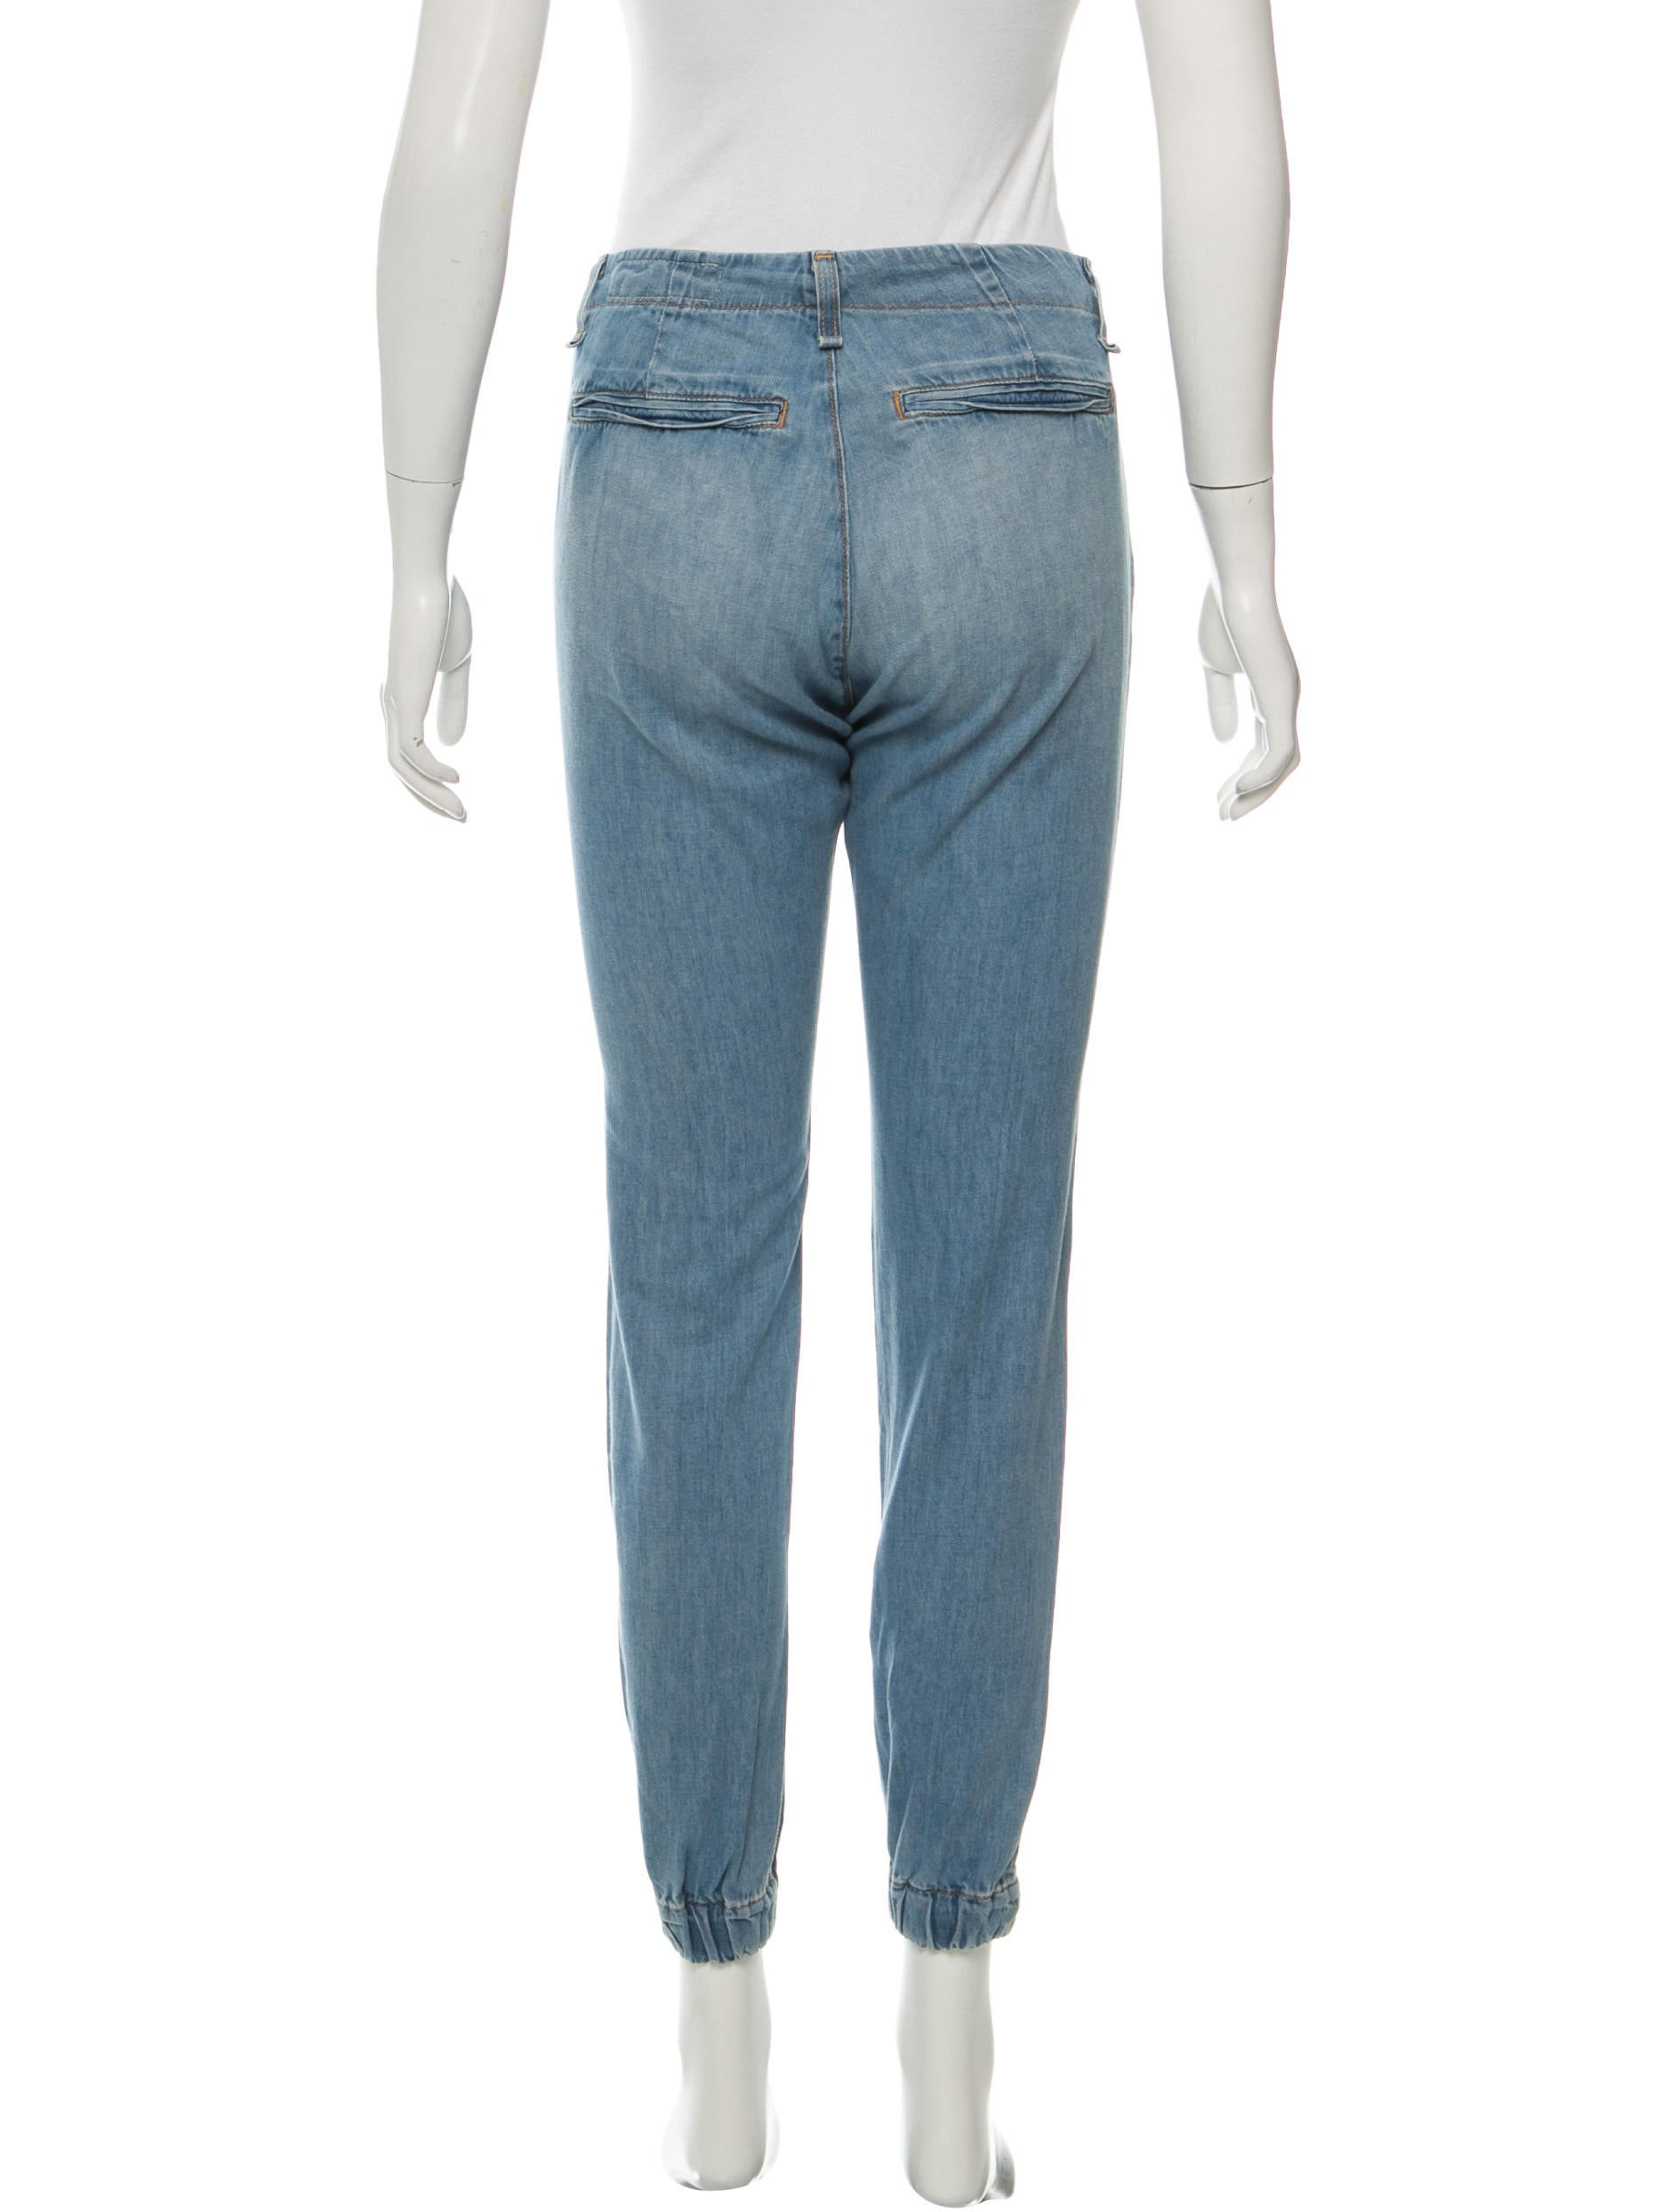 Rag bone chambray skinny jeans clothing wragb62659 for Chambray jeans